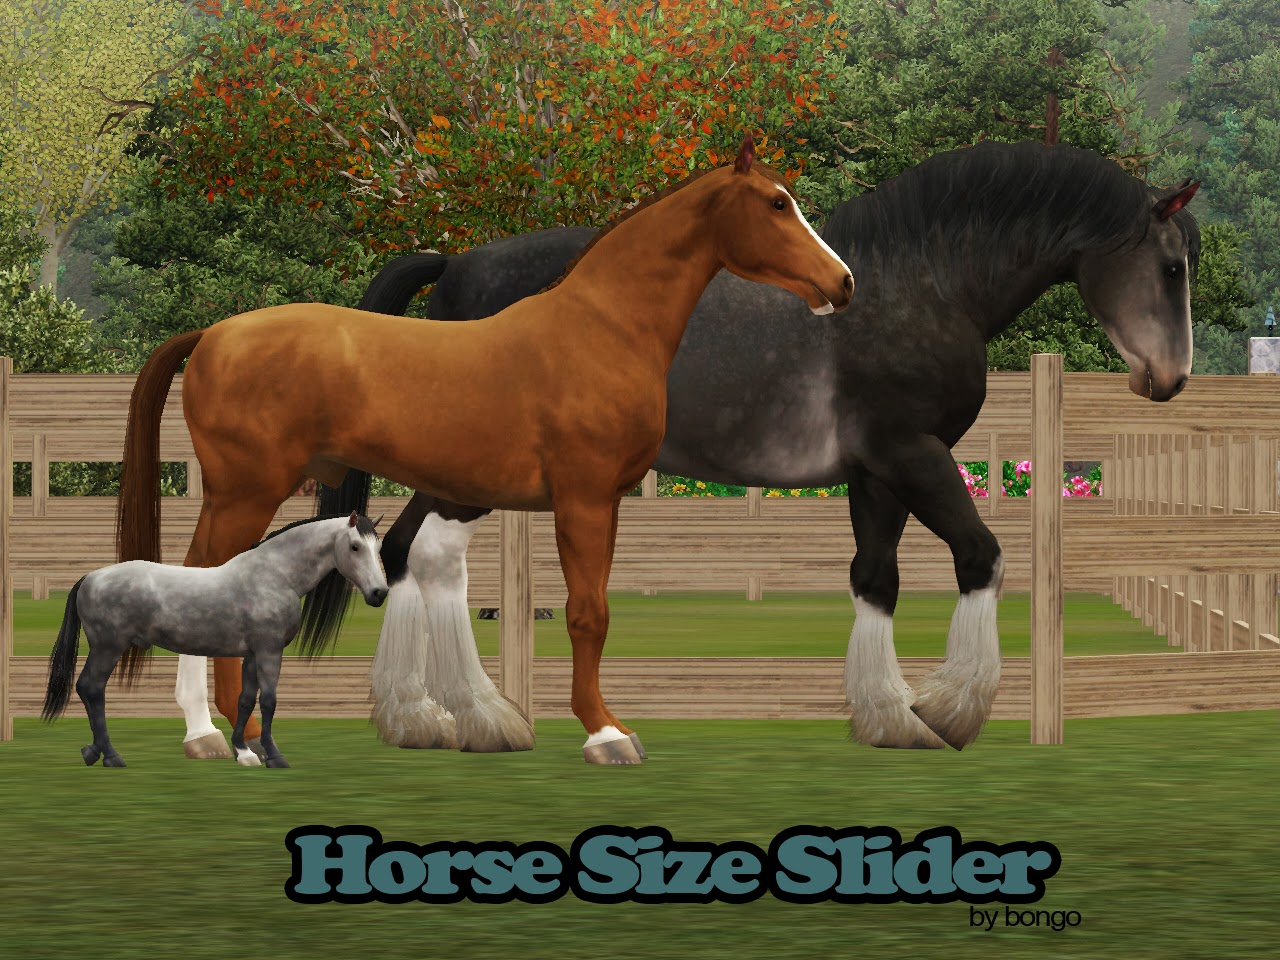 Horse Size Sliders by Bongomazing